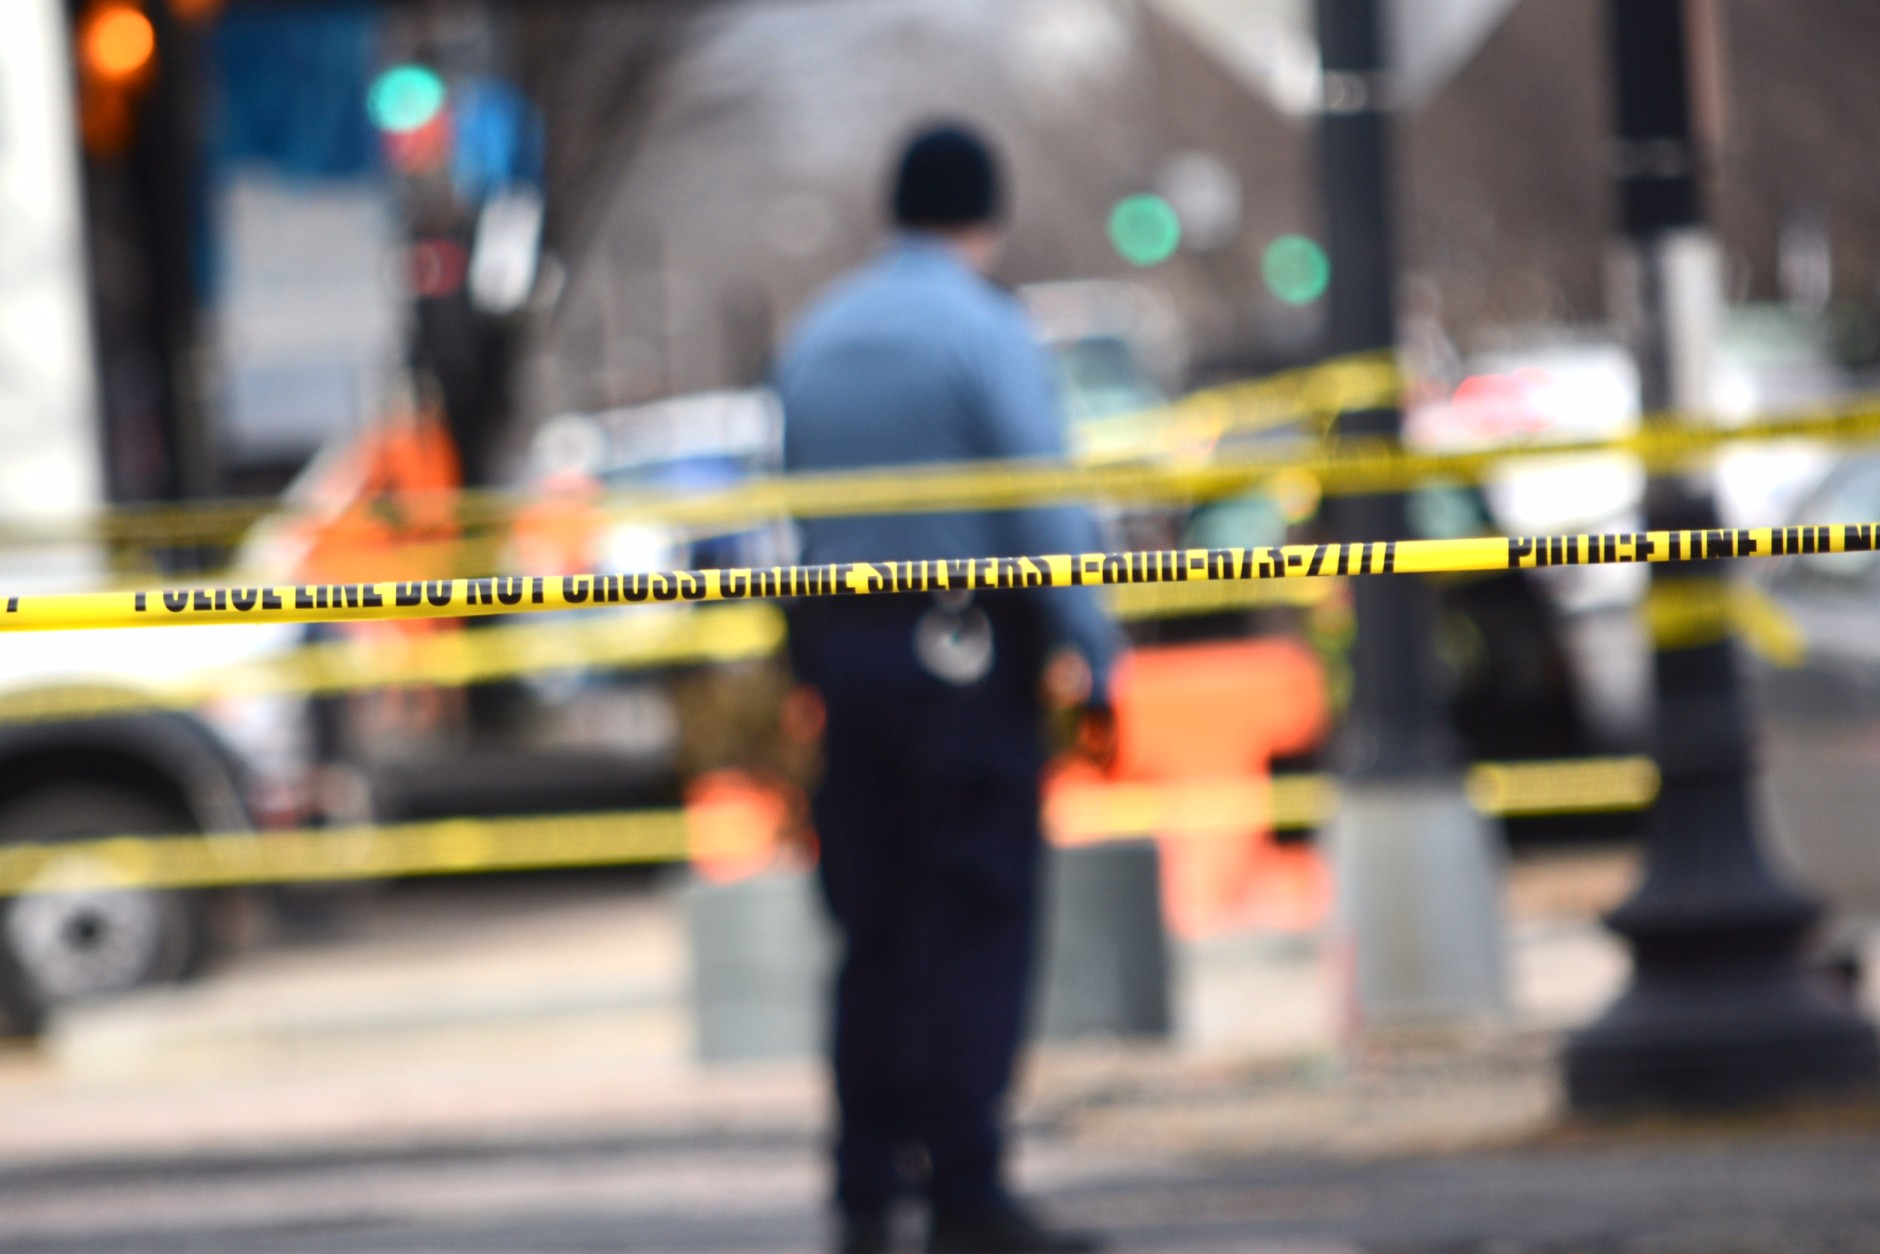 FILE -- Police tape is seen around a crime scene in D.C. (WTOP/Dave Dildine, File)